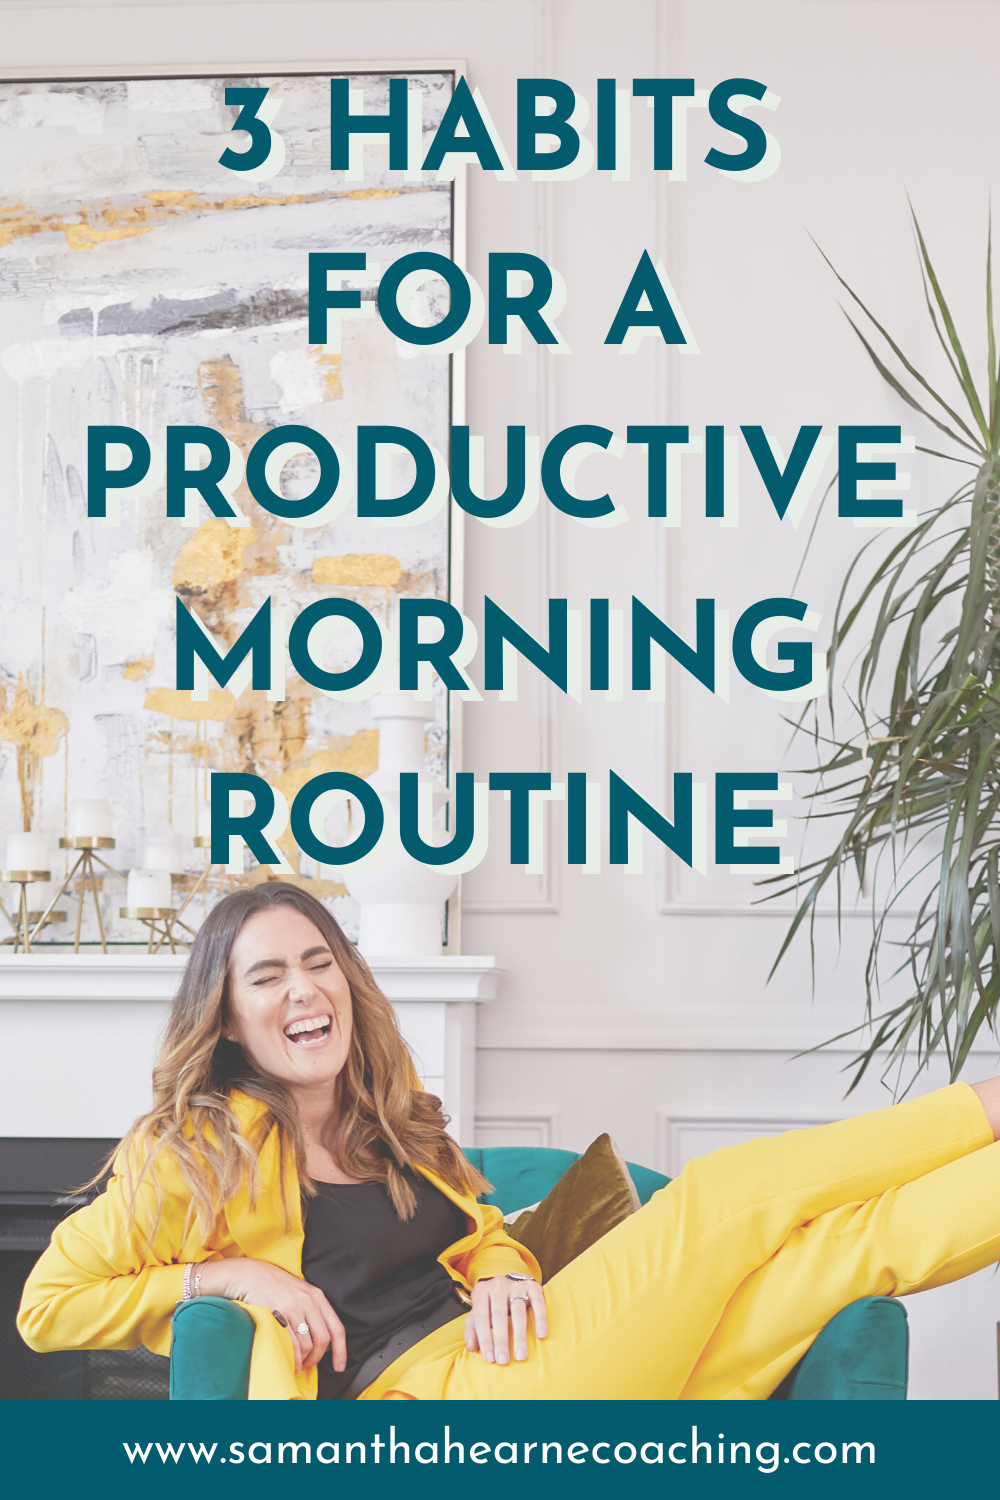 3 habits to have a productive morning routine